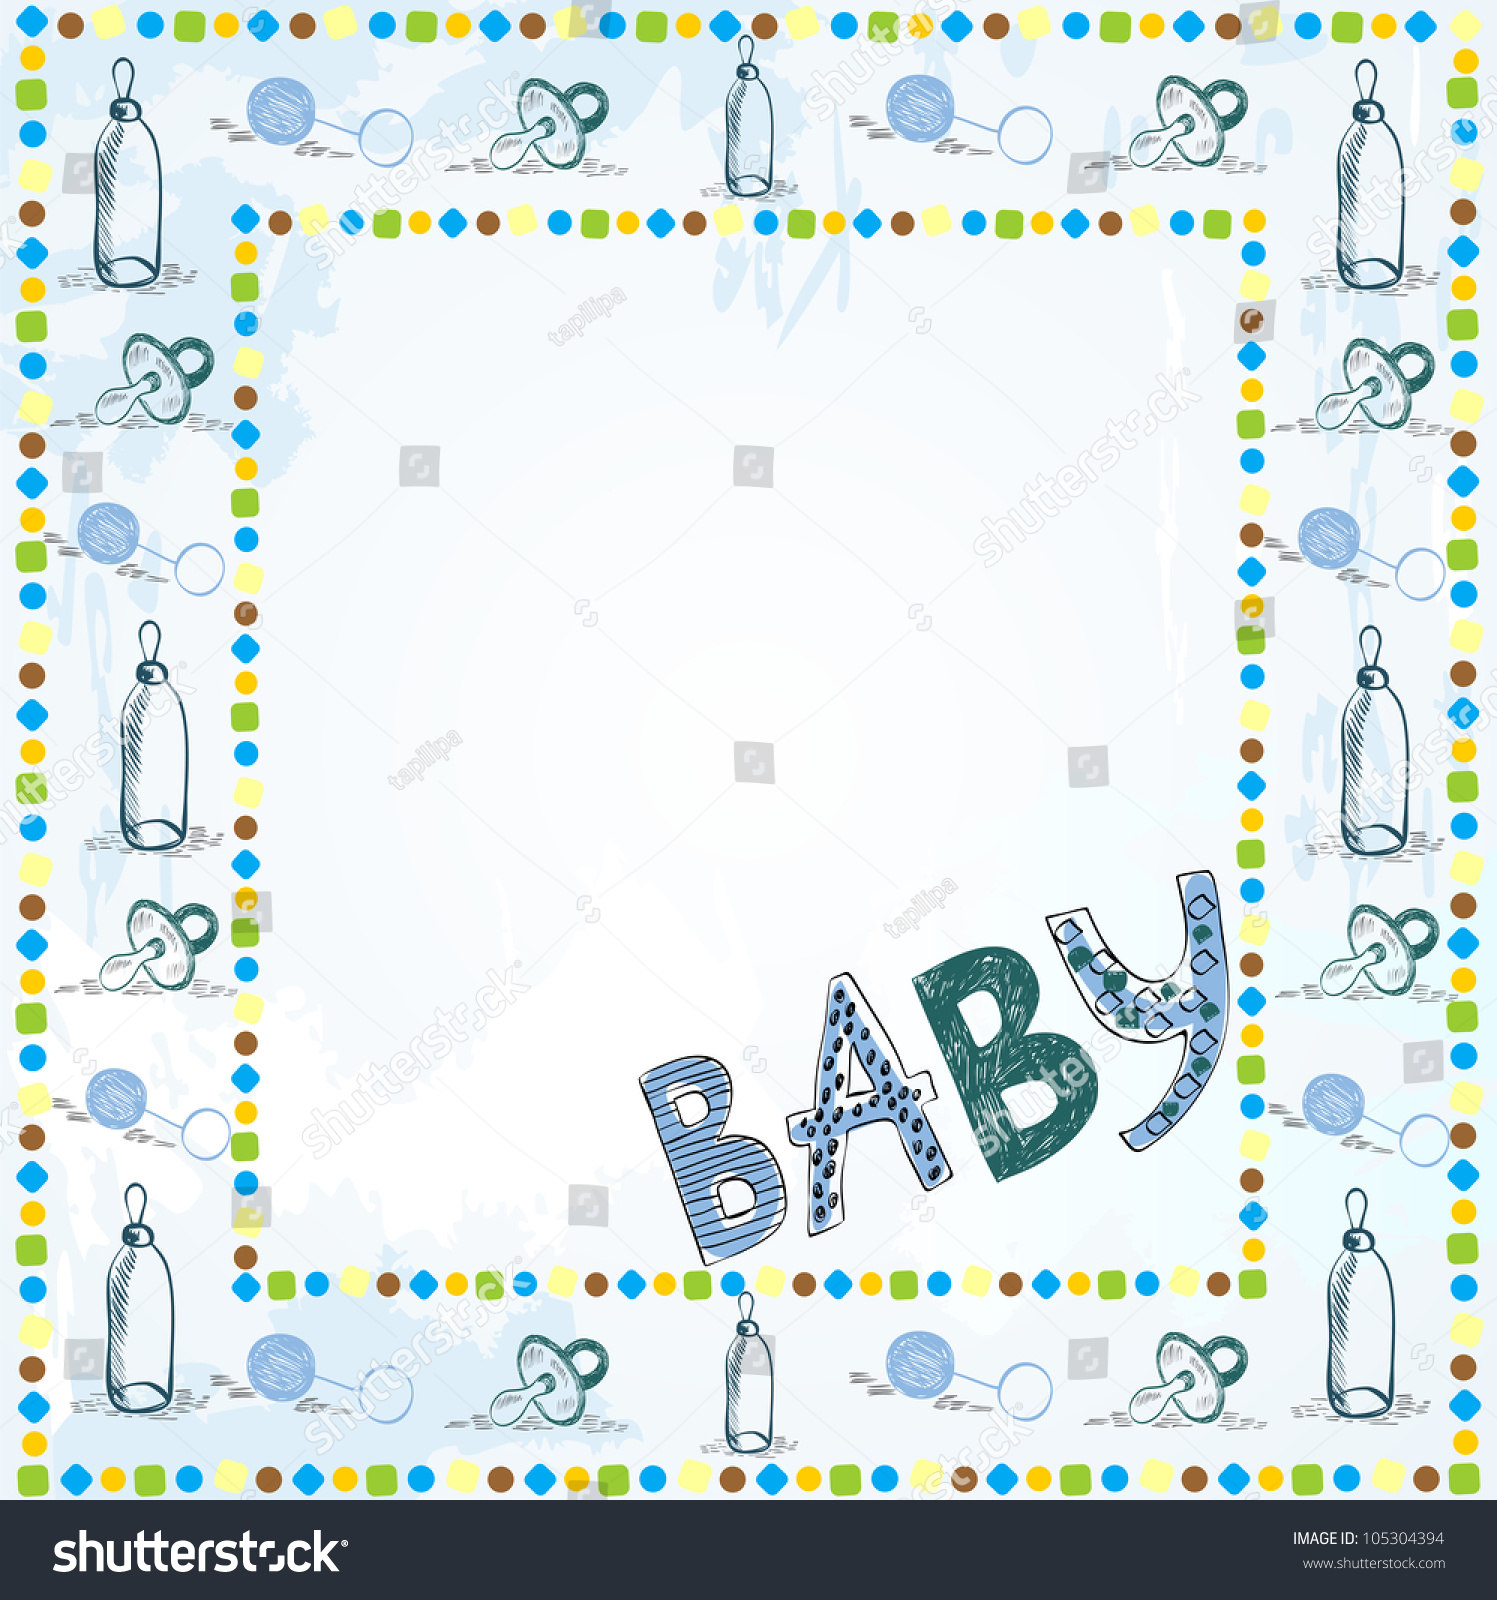 Scrapbook paper baby - Cute Scrapbook Paper For Boy With Baby Elements